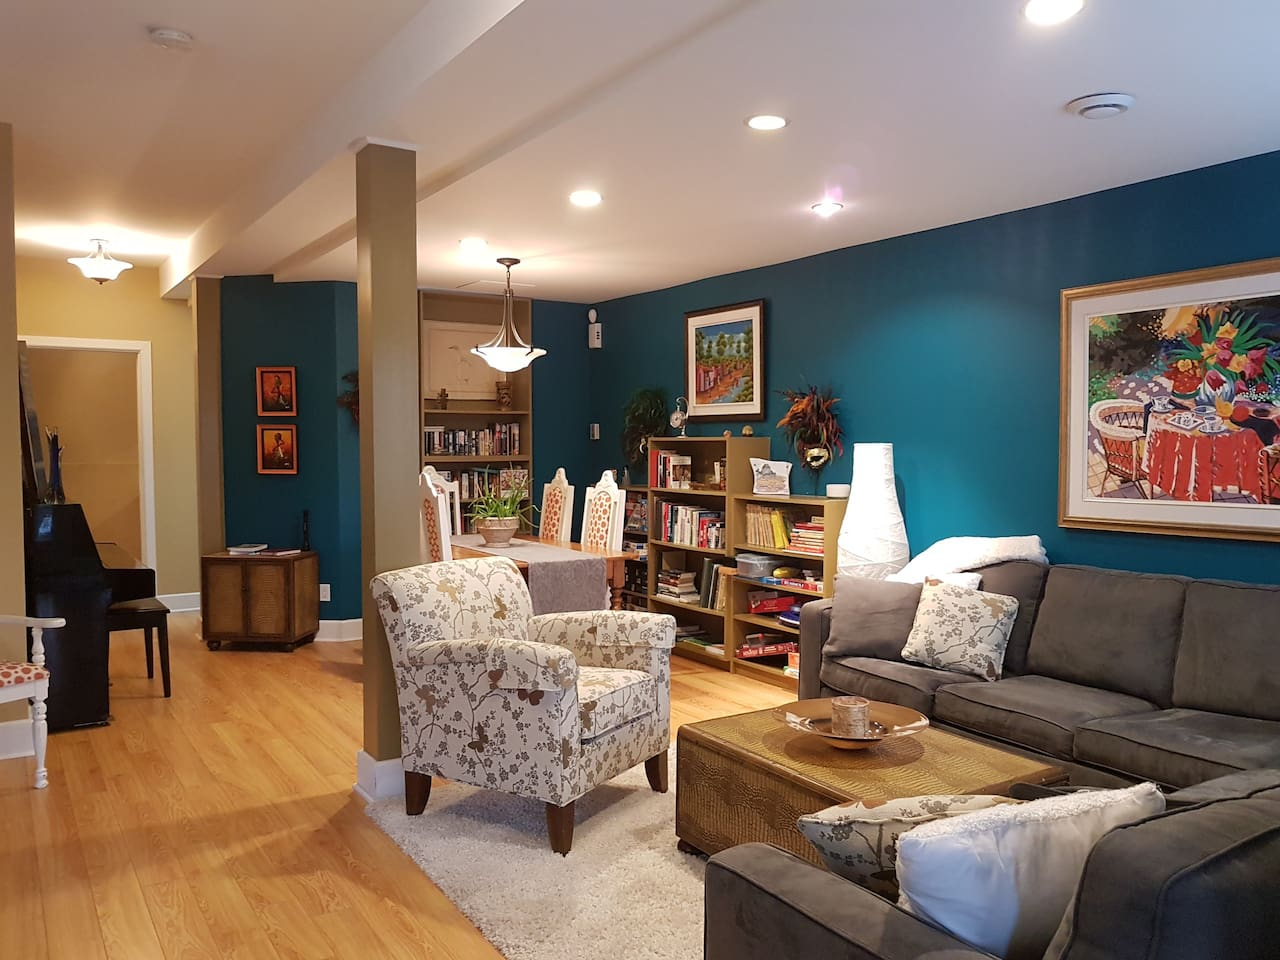 Living room with sectional couch and dining area. Bookshelves contain books, games, and puzzles.